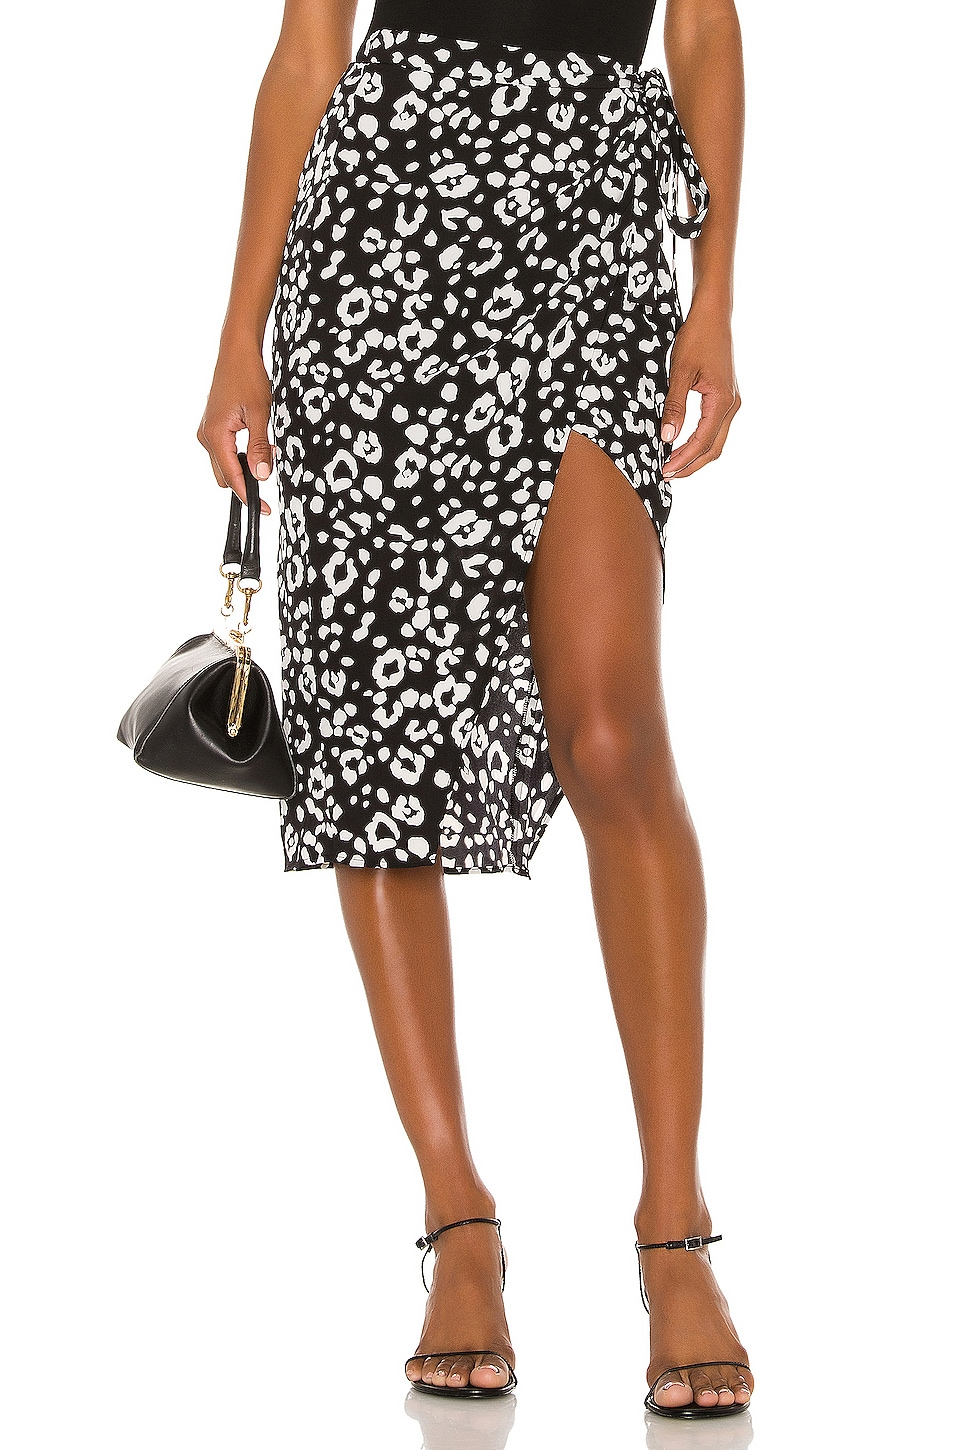 Lovers + Friends Marla Skirt in Black Leopard